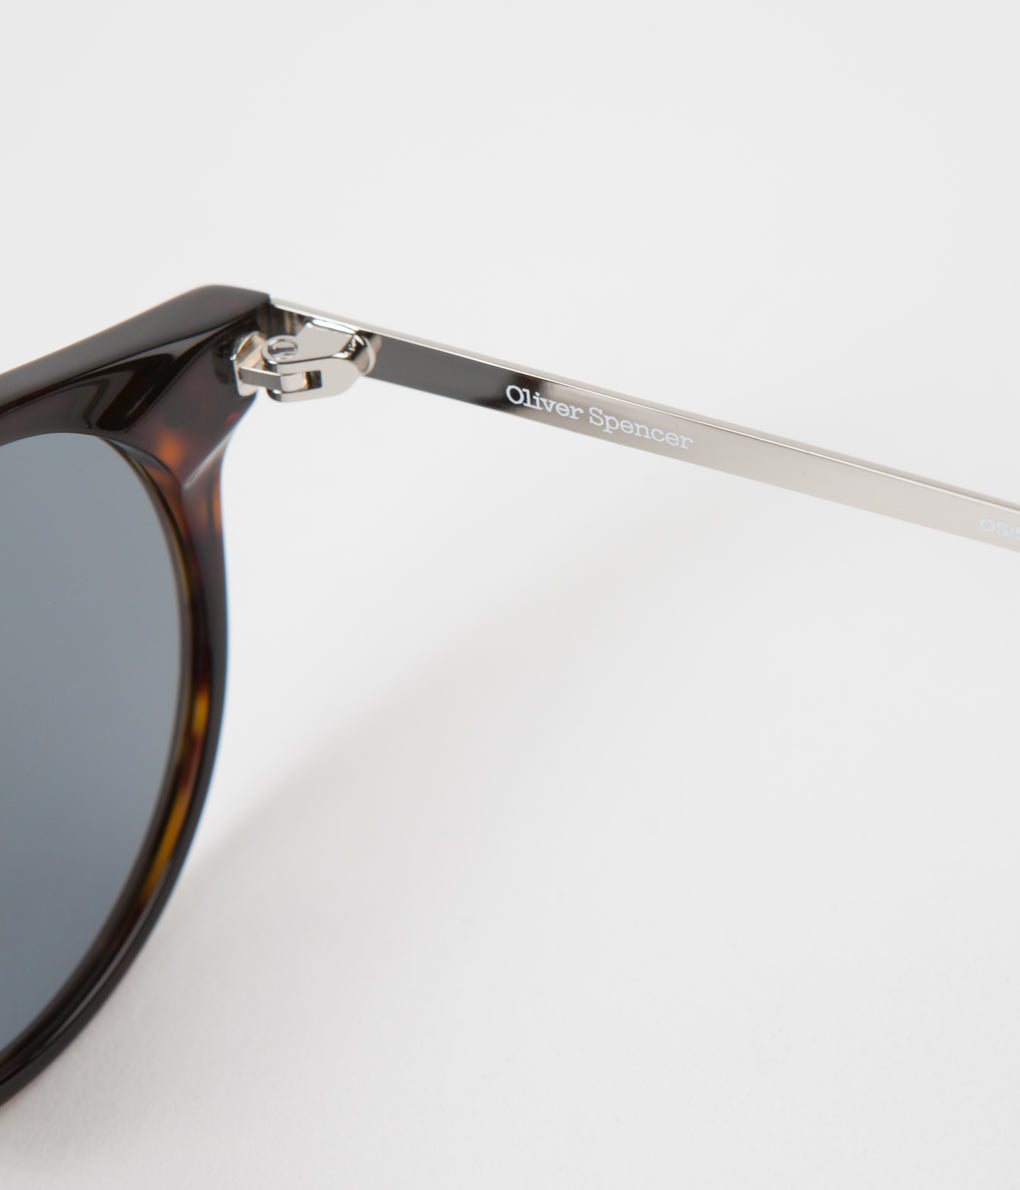 Oliver Spencer William Sunglasses - Dark Tortoiseshell